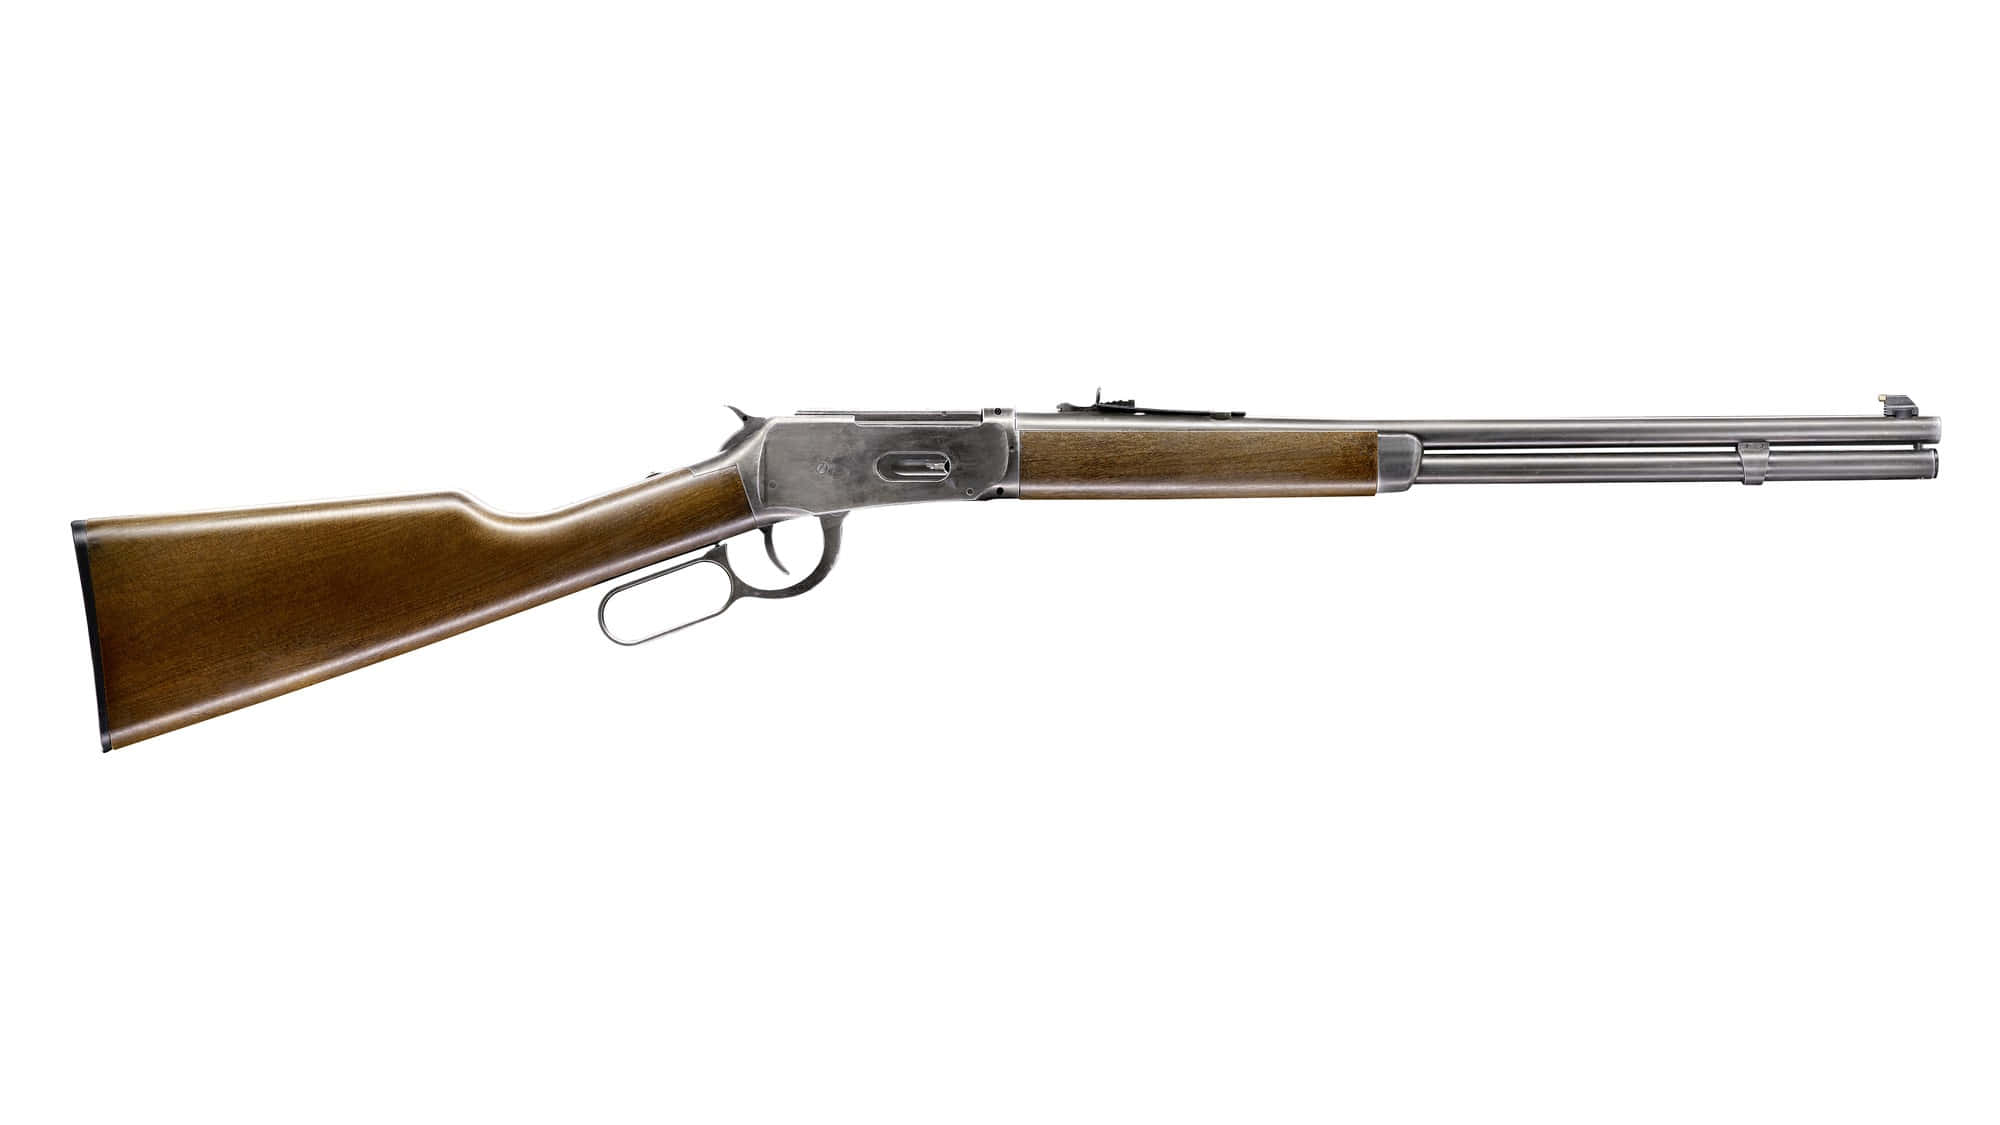 PG2947-2 Replica GBBR Western Legends Co2 Rifle 1.9J - CPG2947